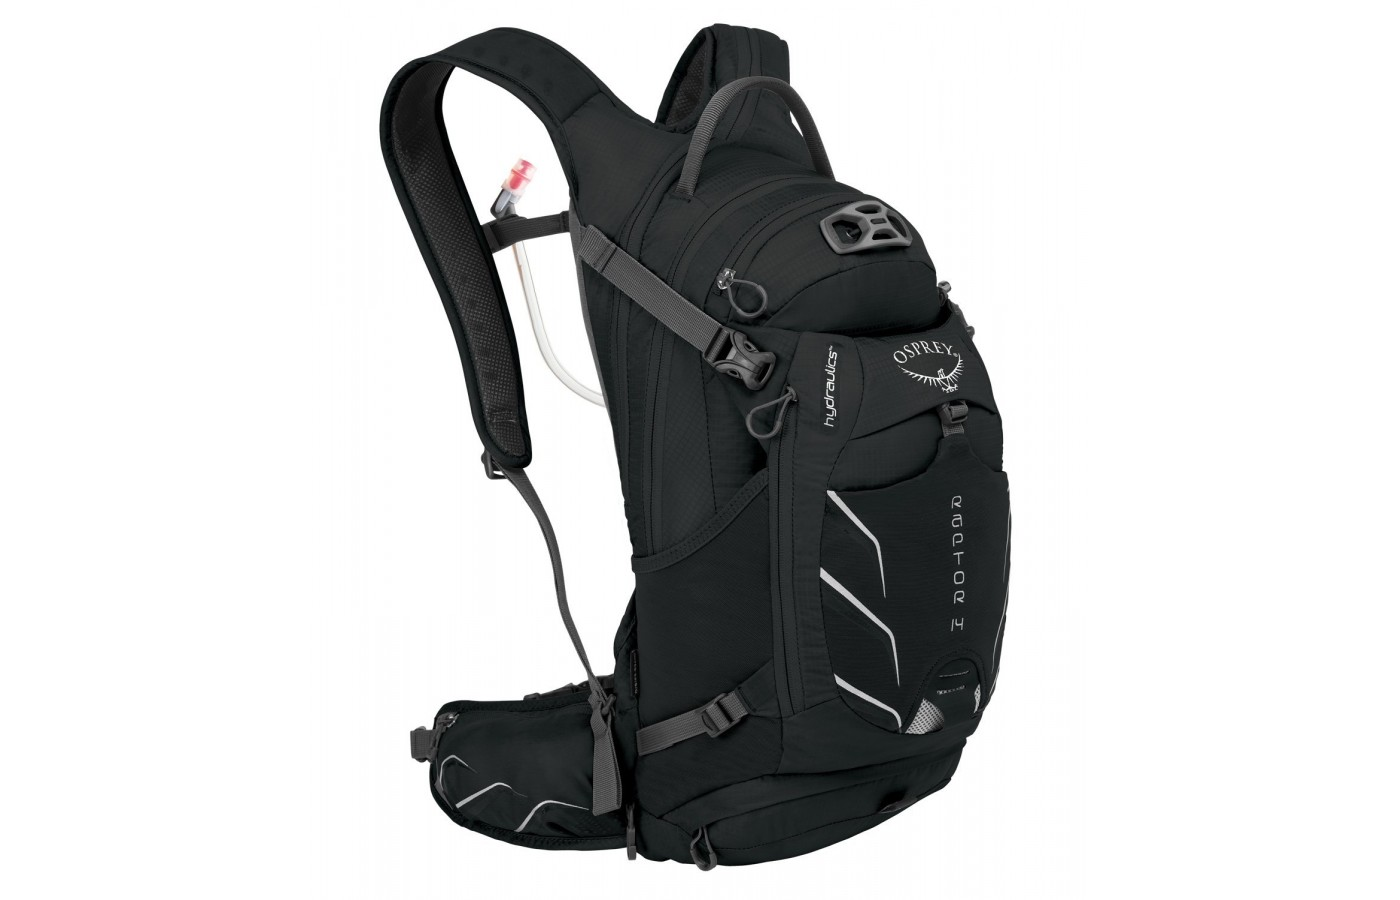 Osprey Packs Raptor 14 Hydration Pack Side View